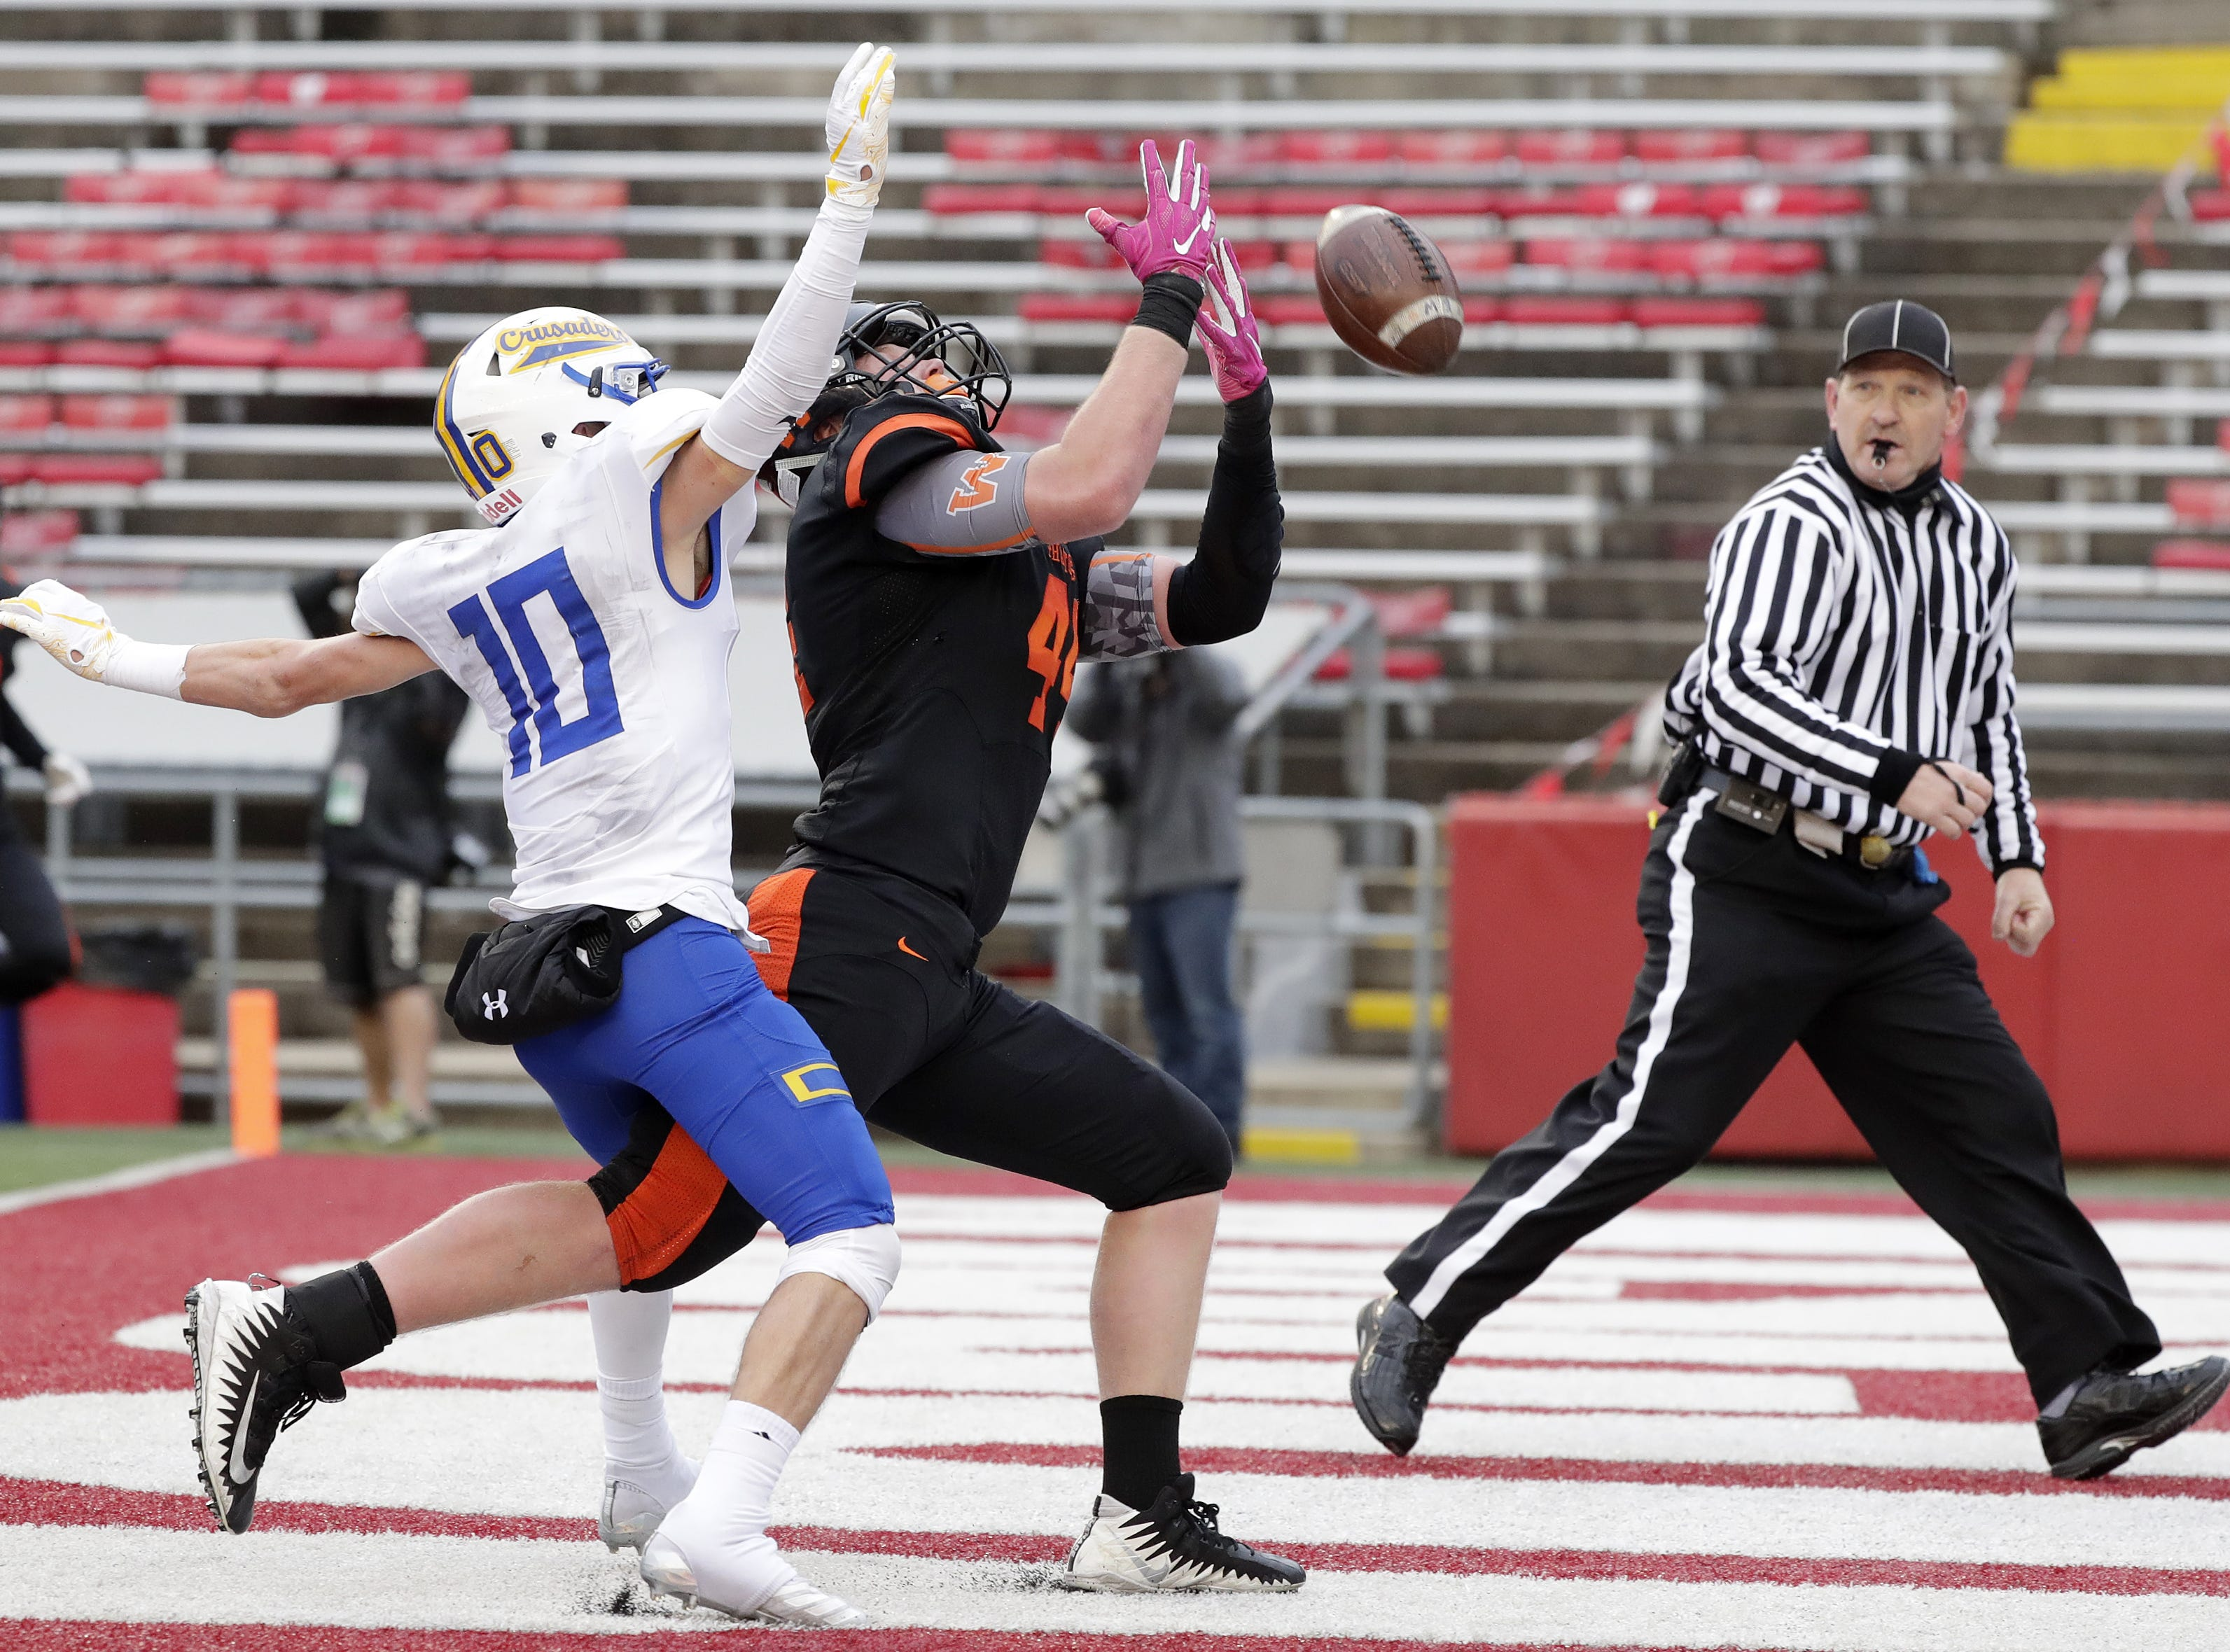 West De Pere's Jake Karchinski (44) can't come up with the ball in the end zone against Catholic Memorial's Matthew Schultz (10) in the WIAA Division 3 championship game at Camp Randall Stadium on Friday, November 16, 2018 in Madison, Wis.